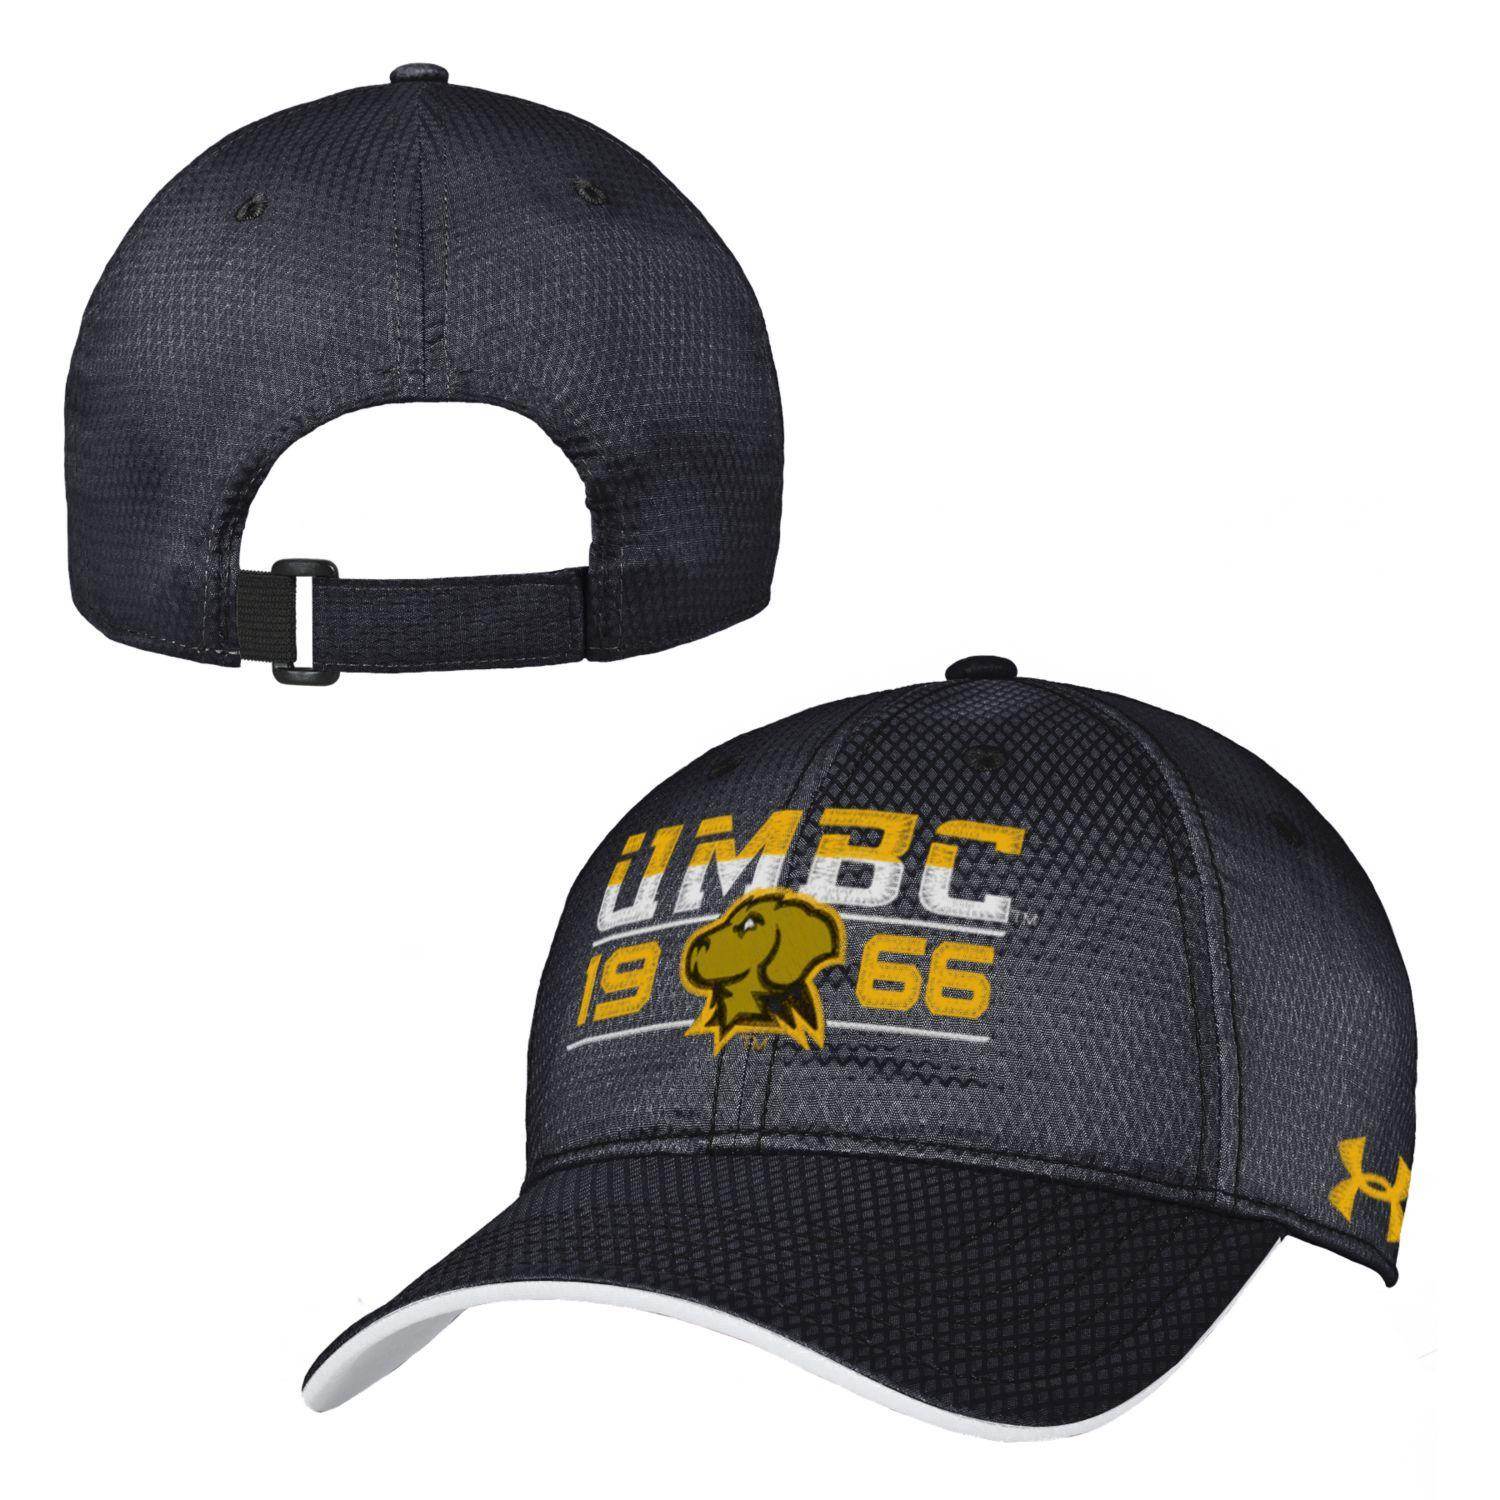 CAP: UNDER ARMOUR BLACK ZONE